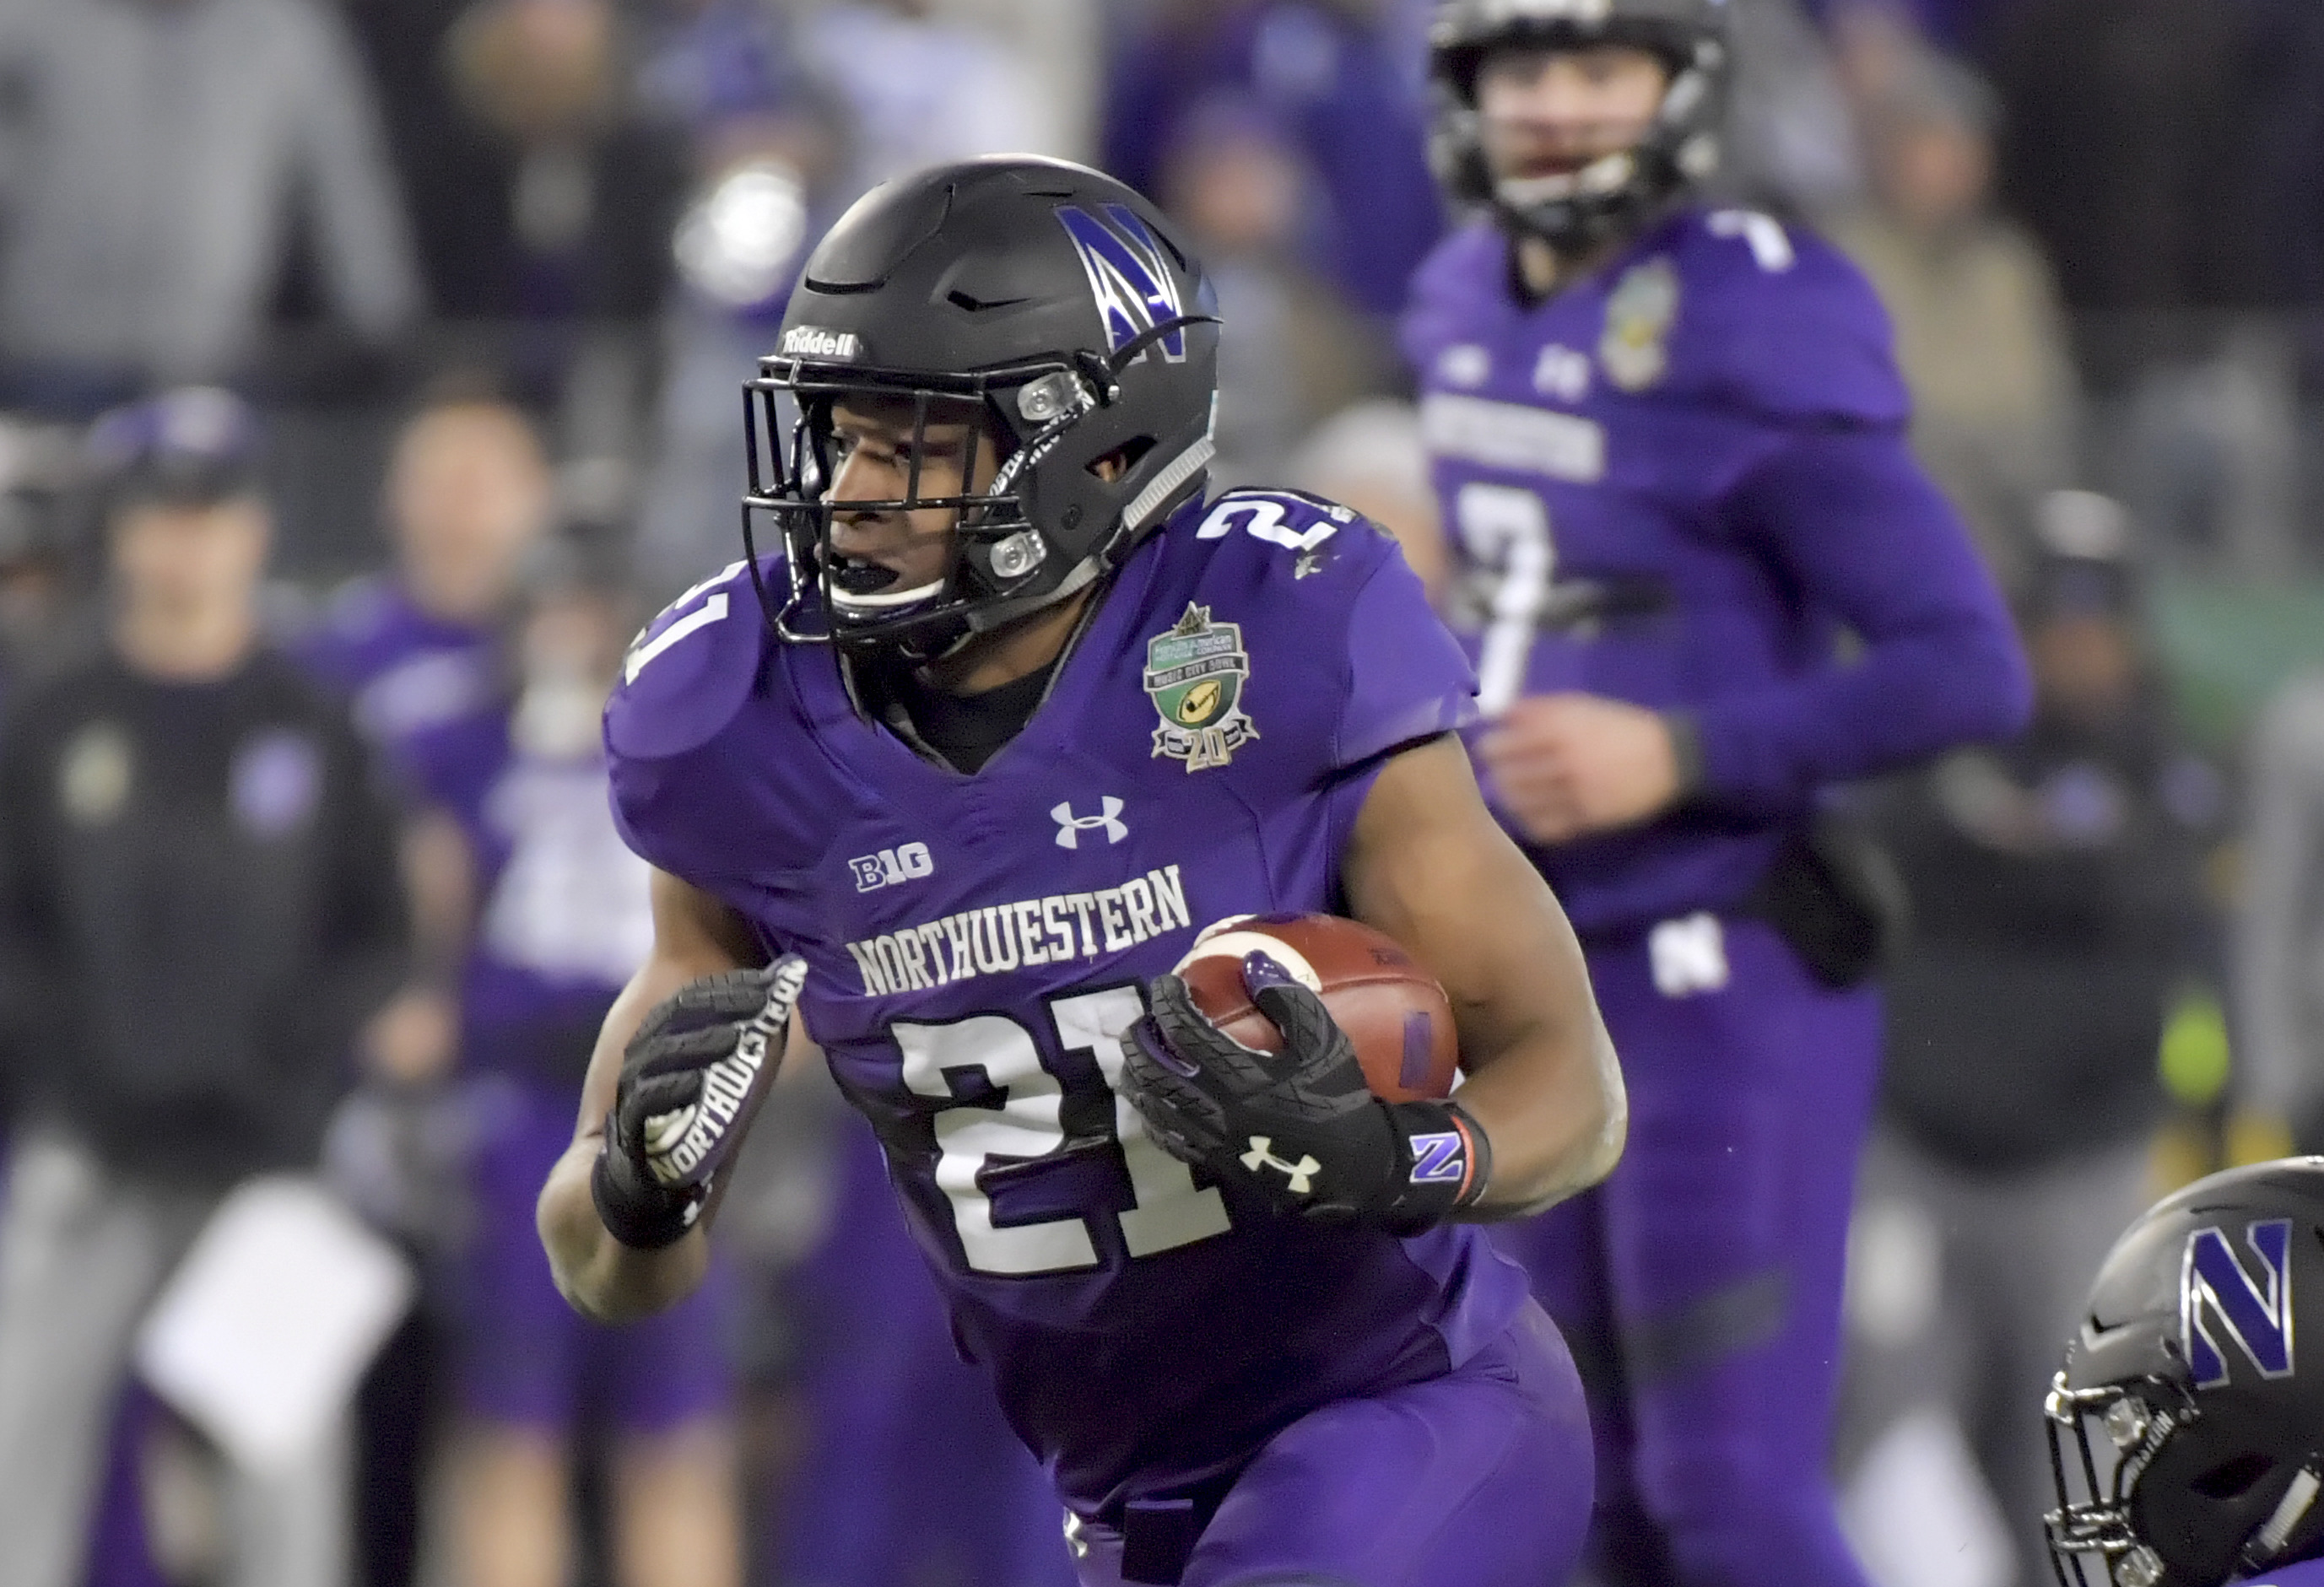 Get the latest Northwestern Wildcats news scores stats standings rumors and more from ESPN